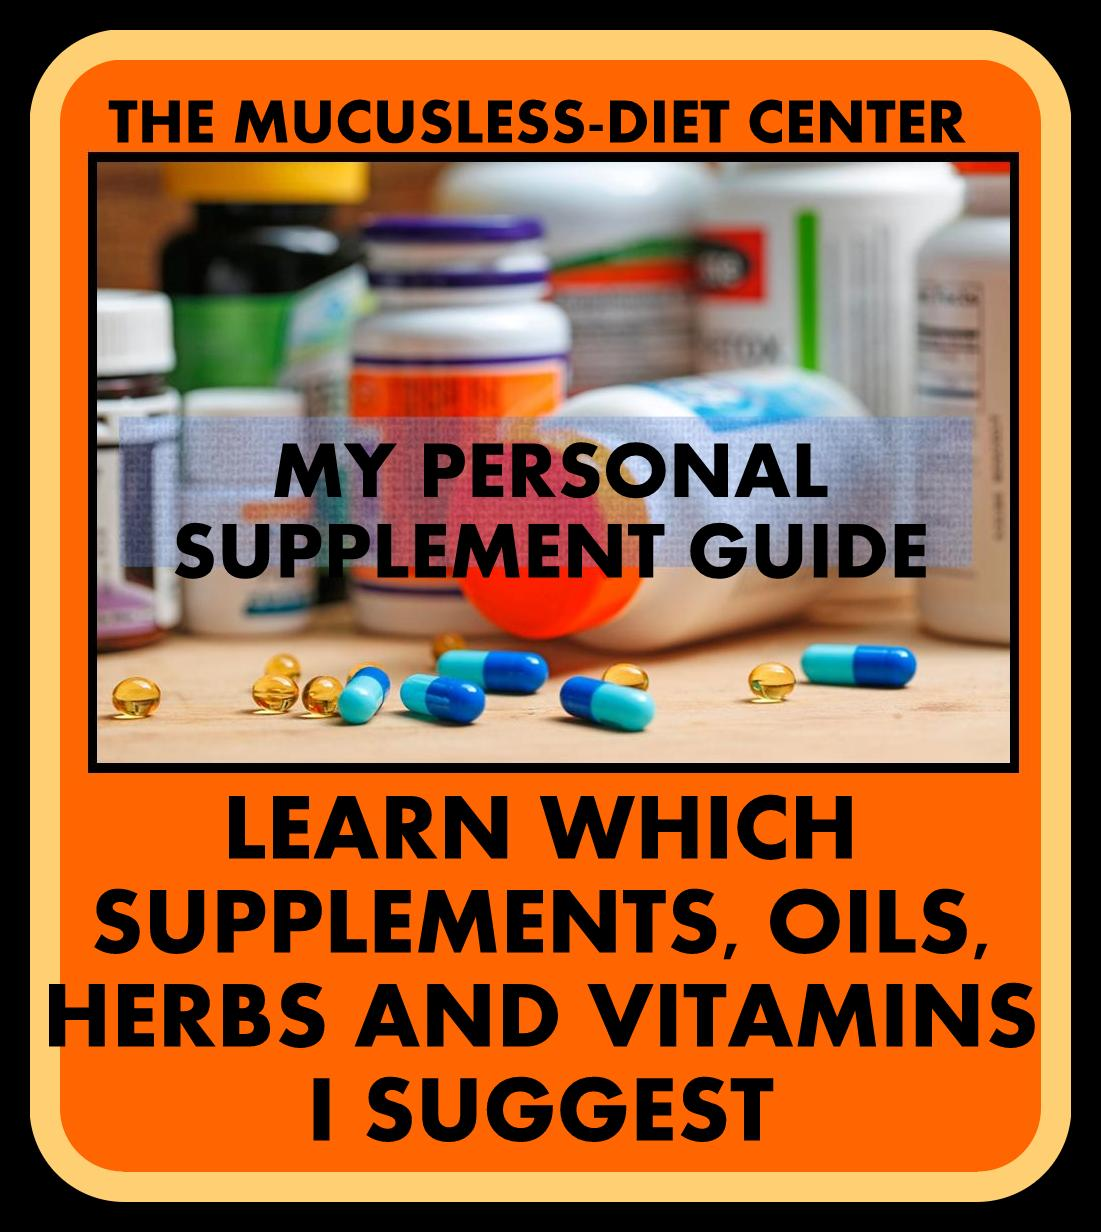 FREE PERSONAL SUPPLEMENT GUIDE